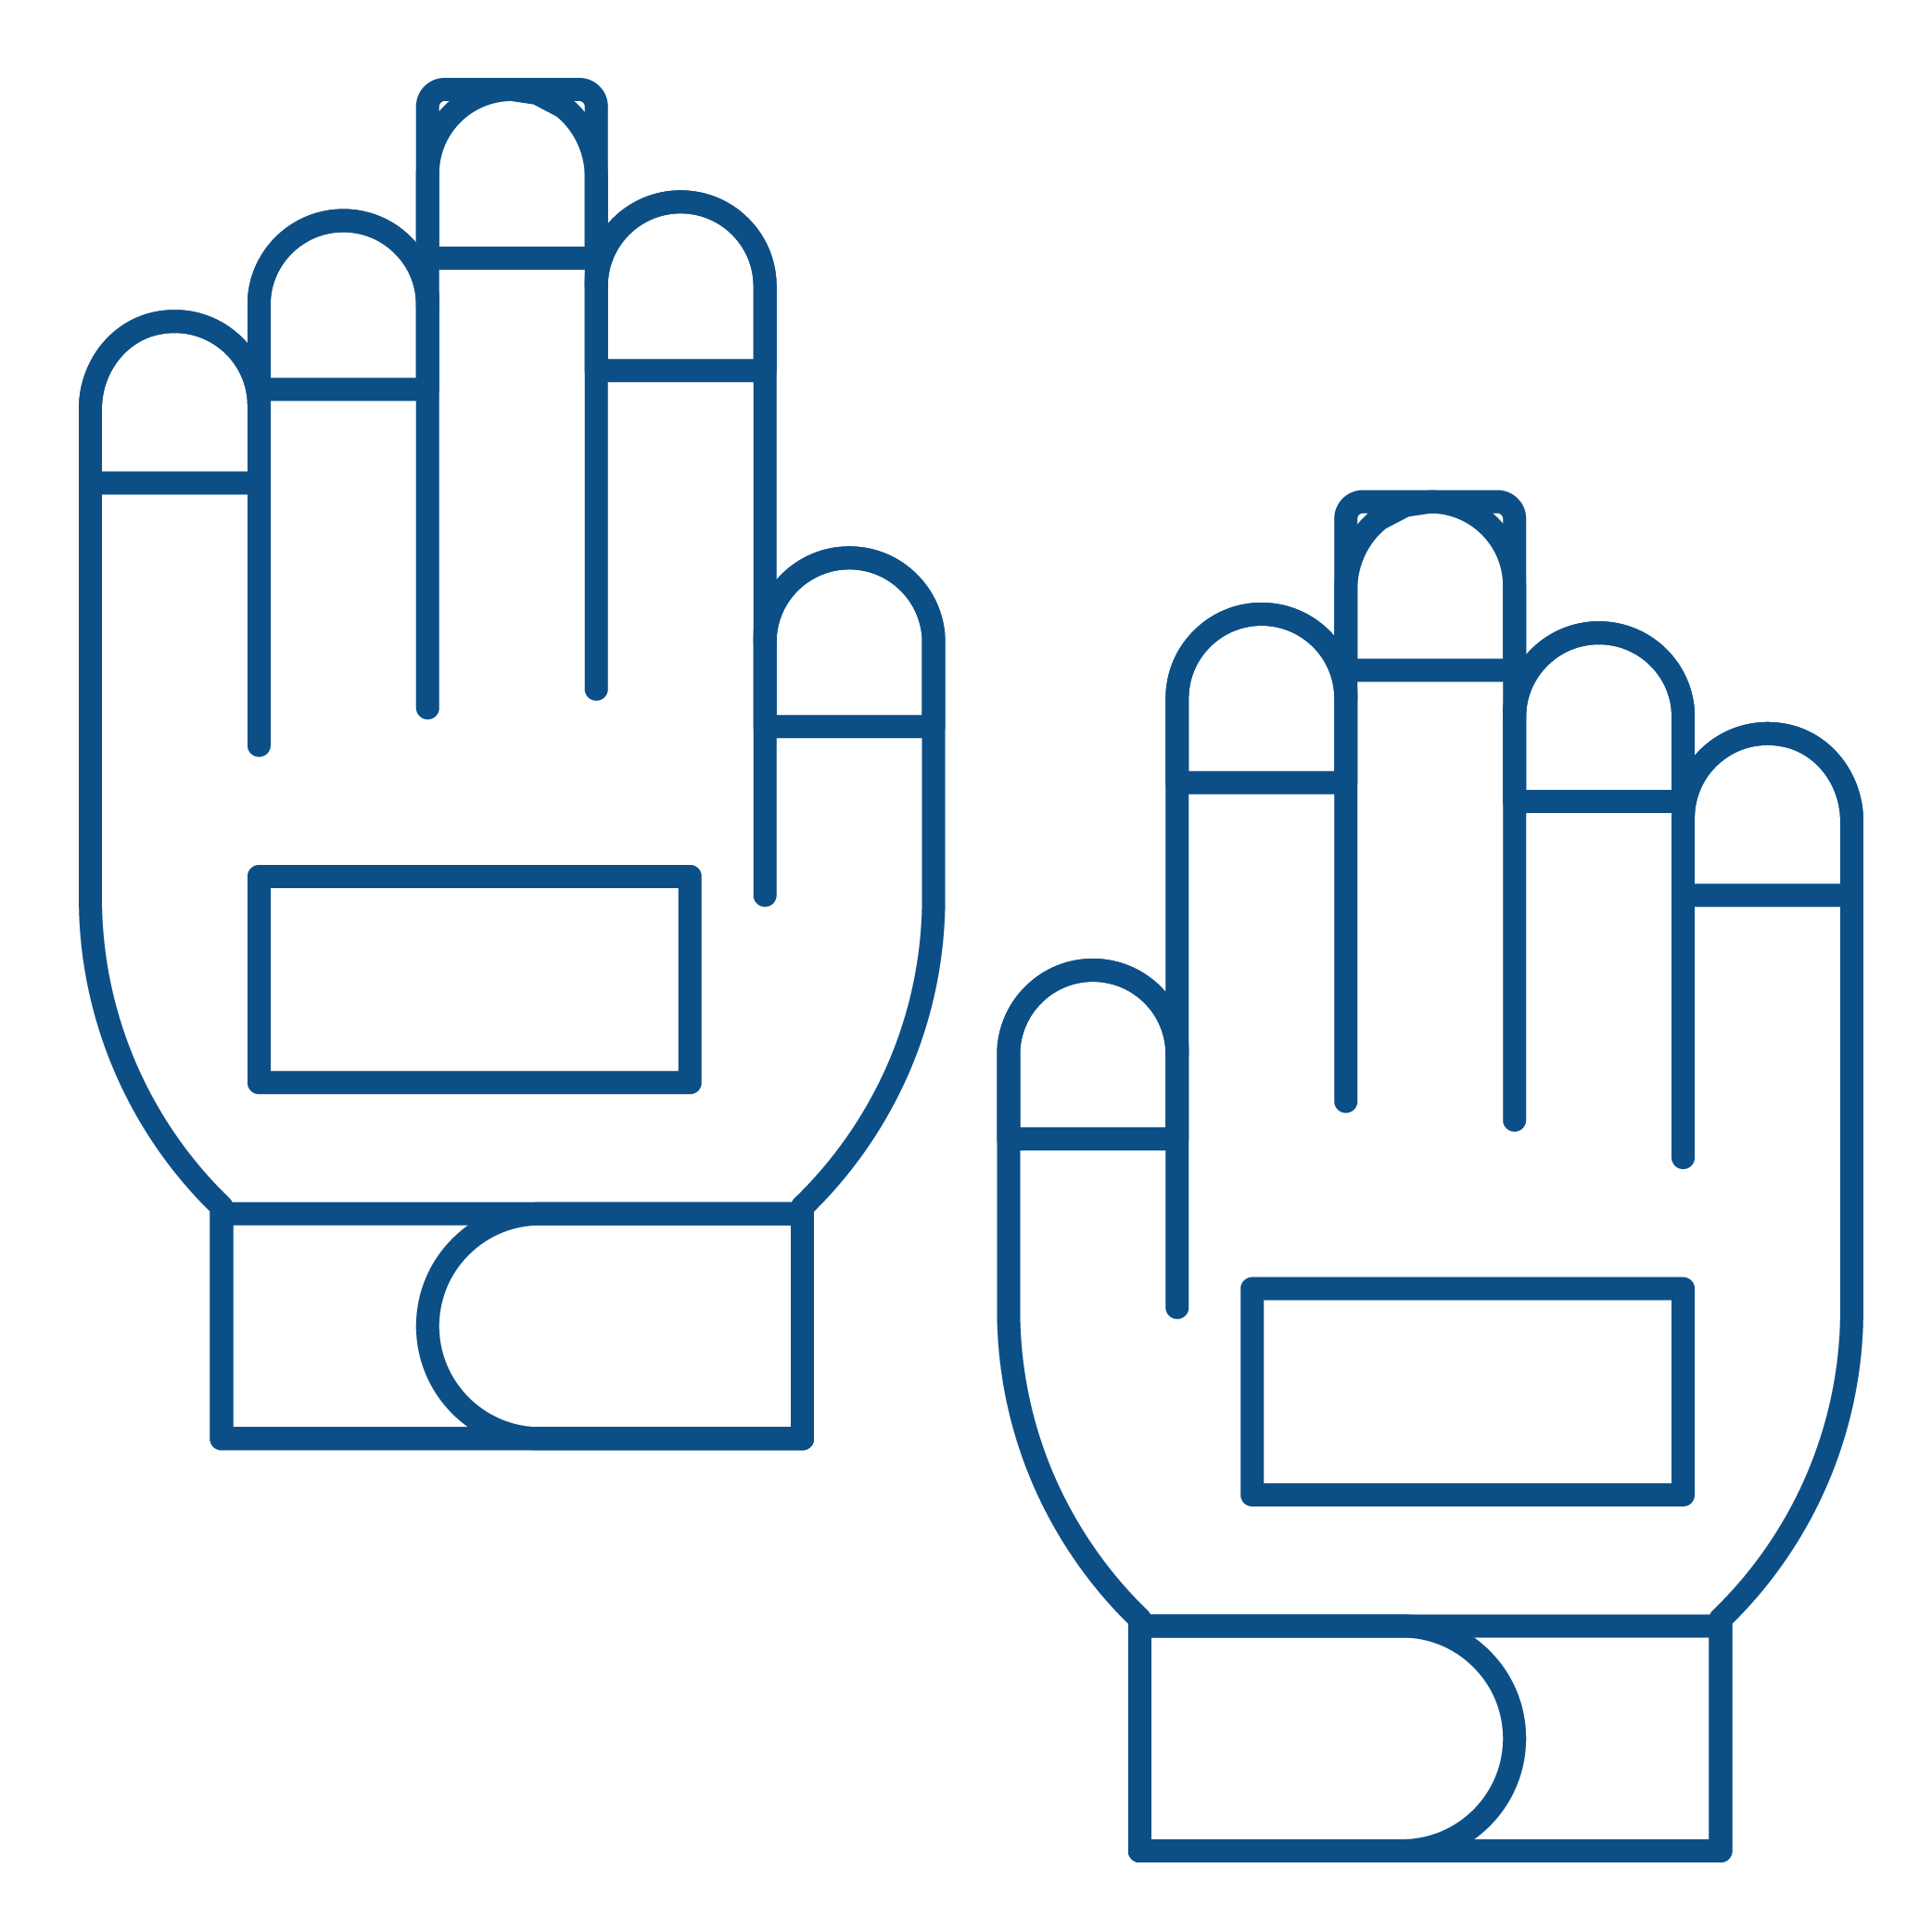 gloves-to-disinfect-icon